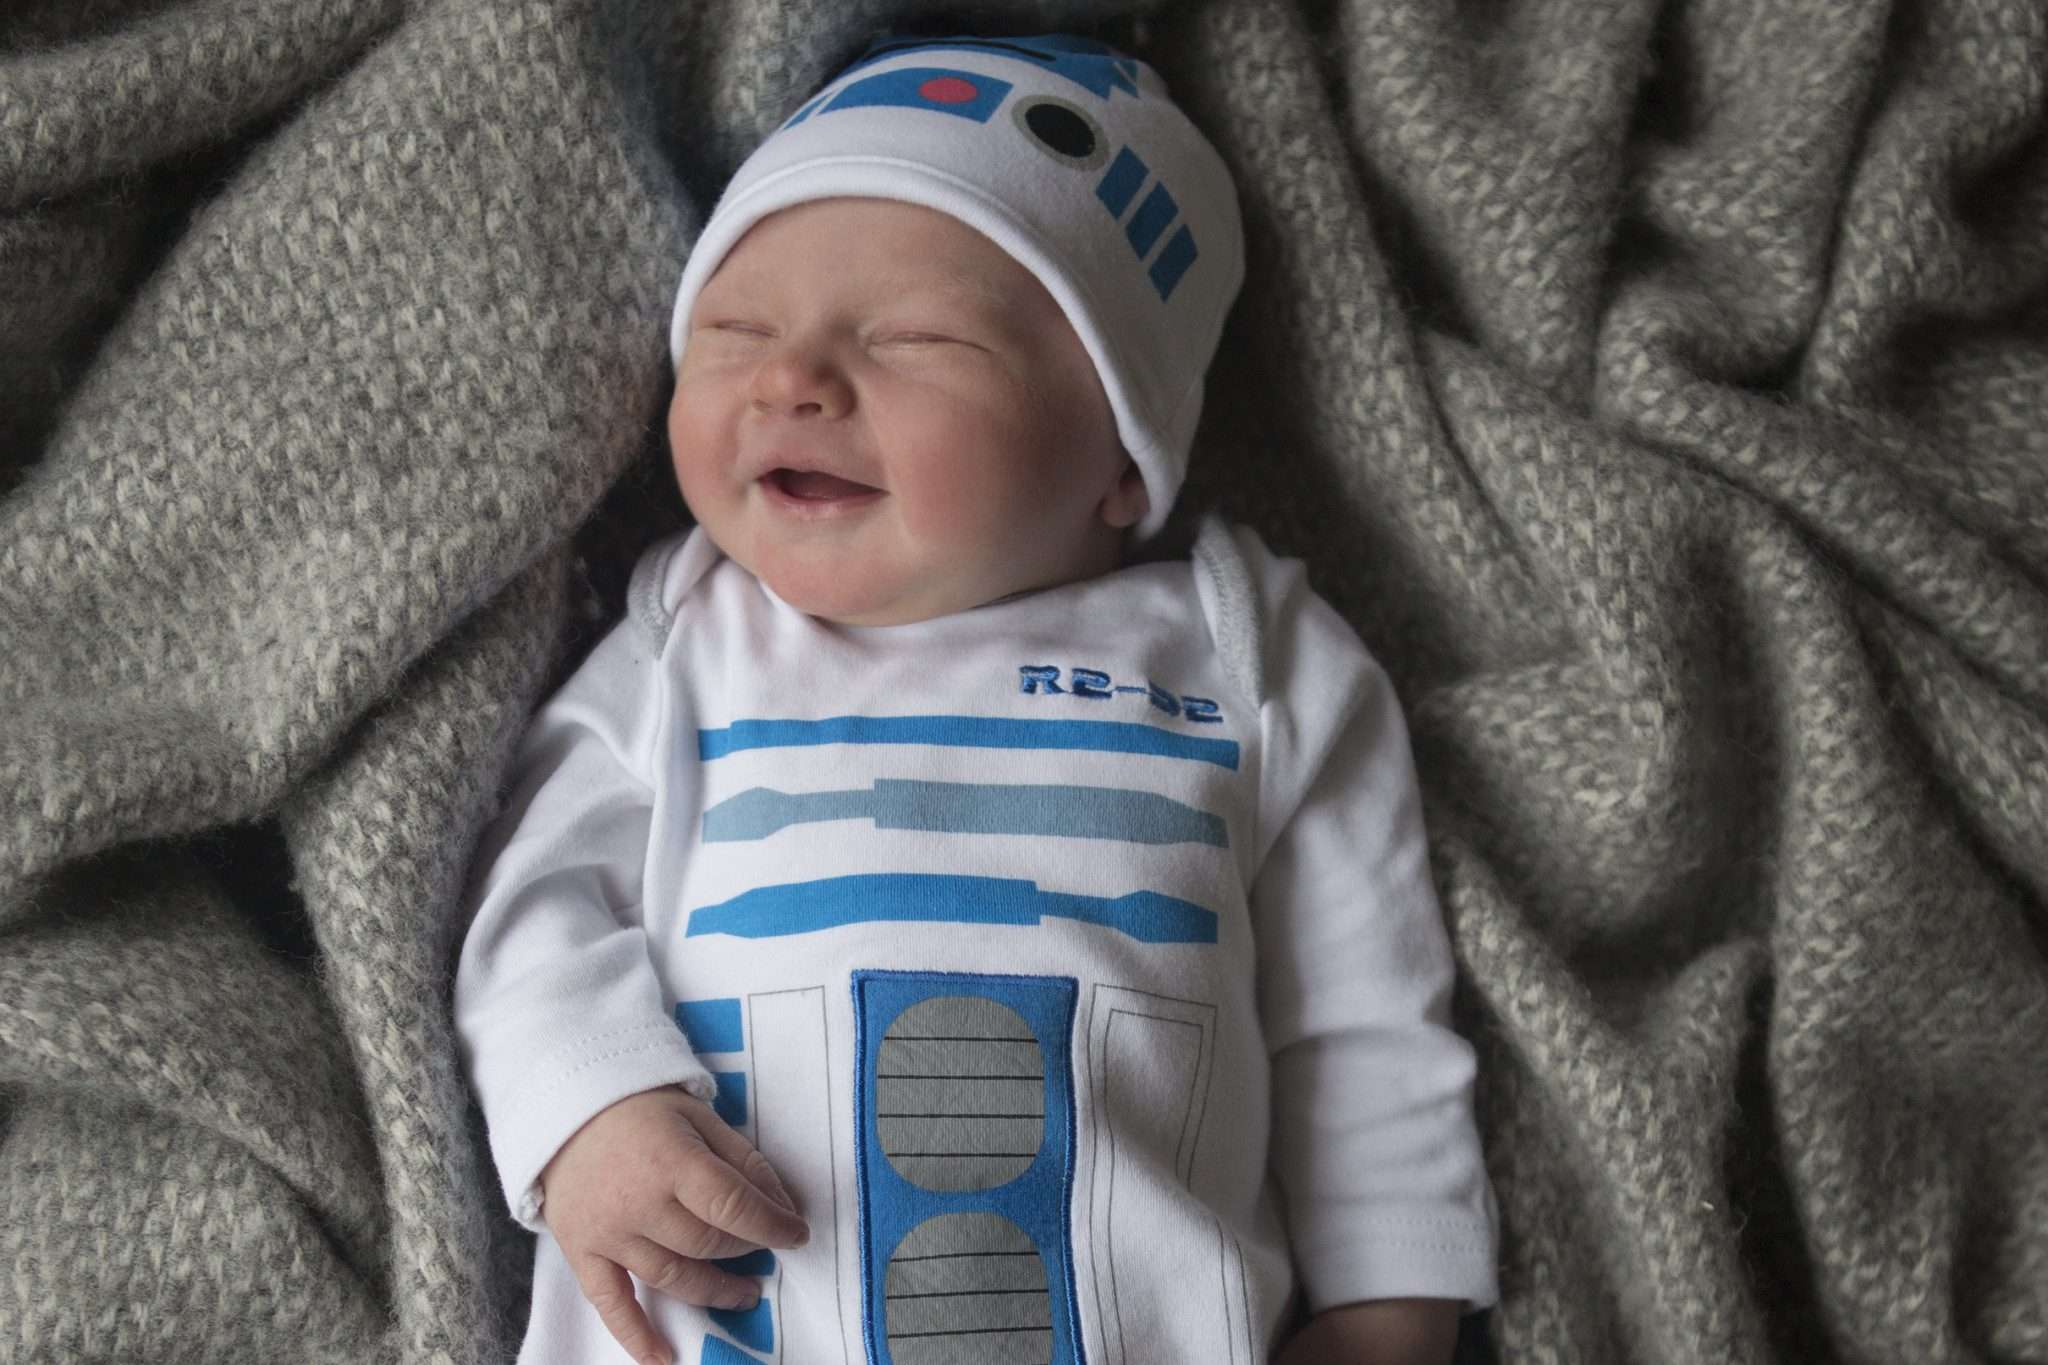 A photo of a smiling newborn baby wearing an R2D2 Starwars outfit